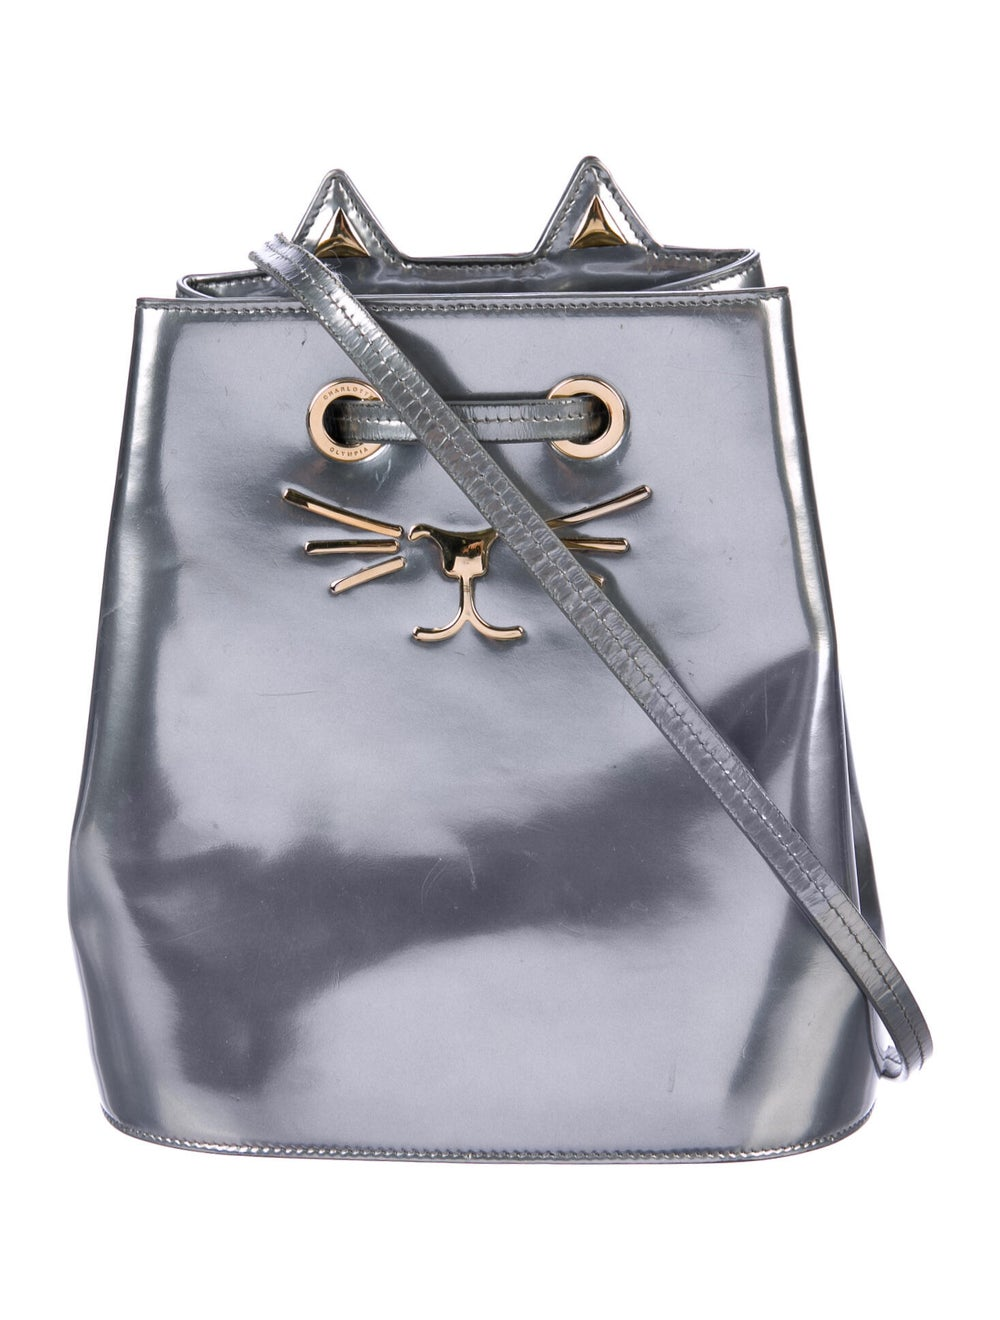 Charlotte Olympia Patent Leather Cat Bucket Bag S… - image 1